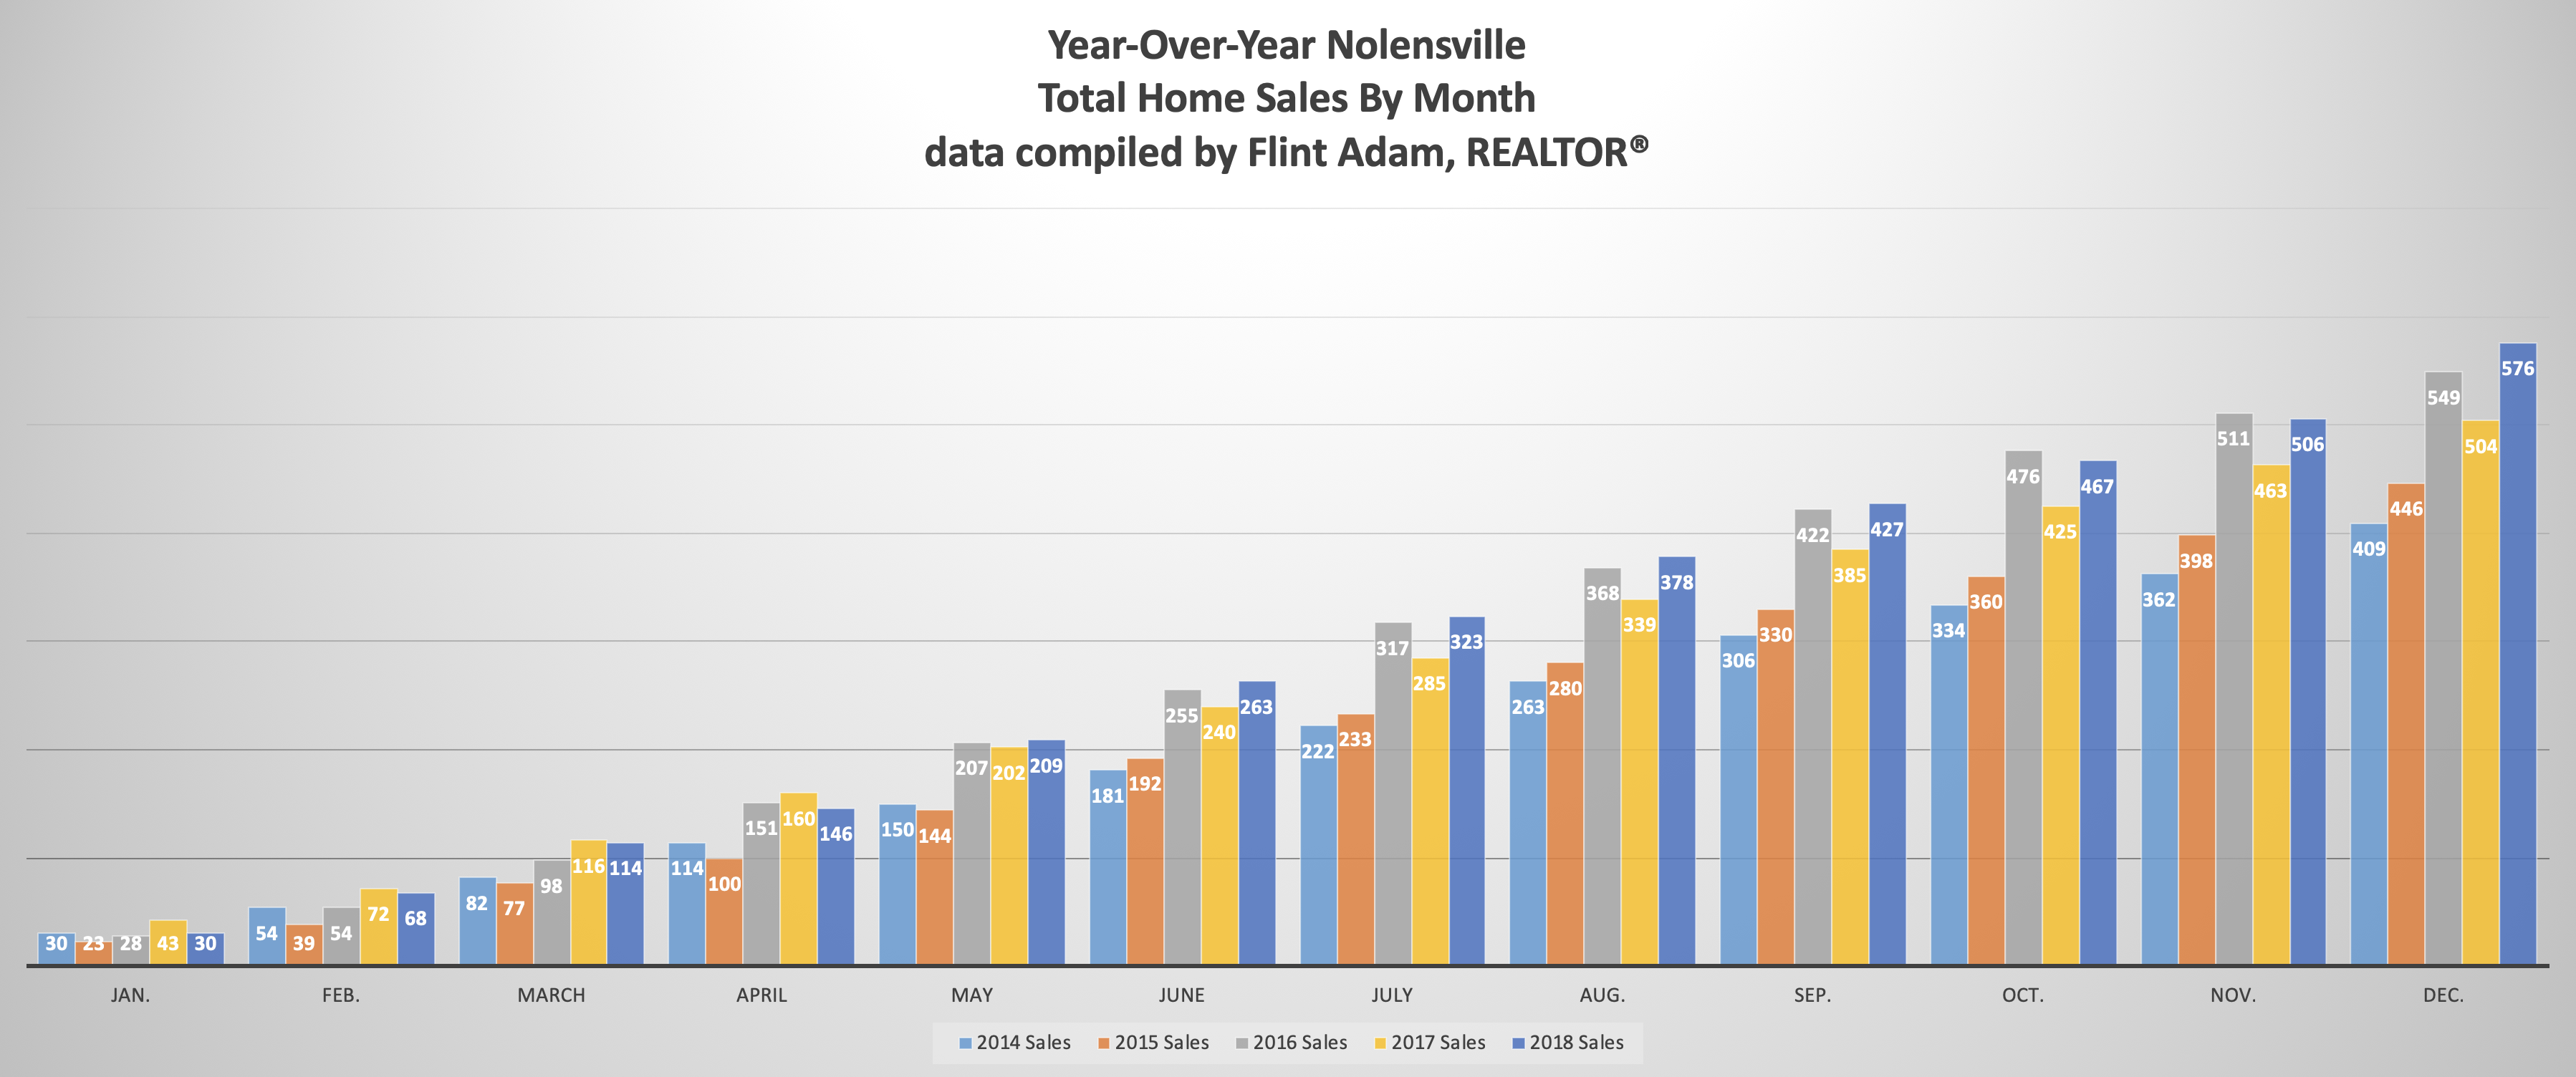 Year-Over-Year Nolensville Total Home Sales By Month